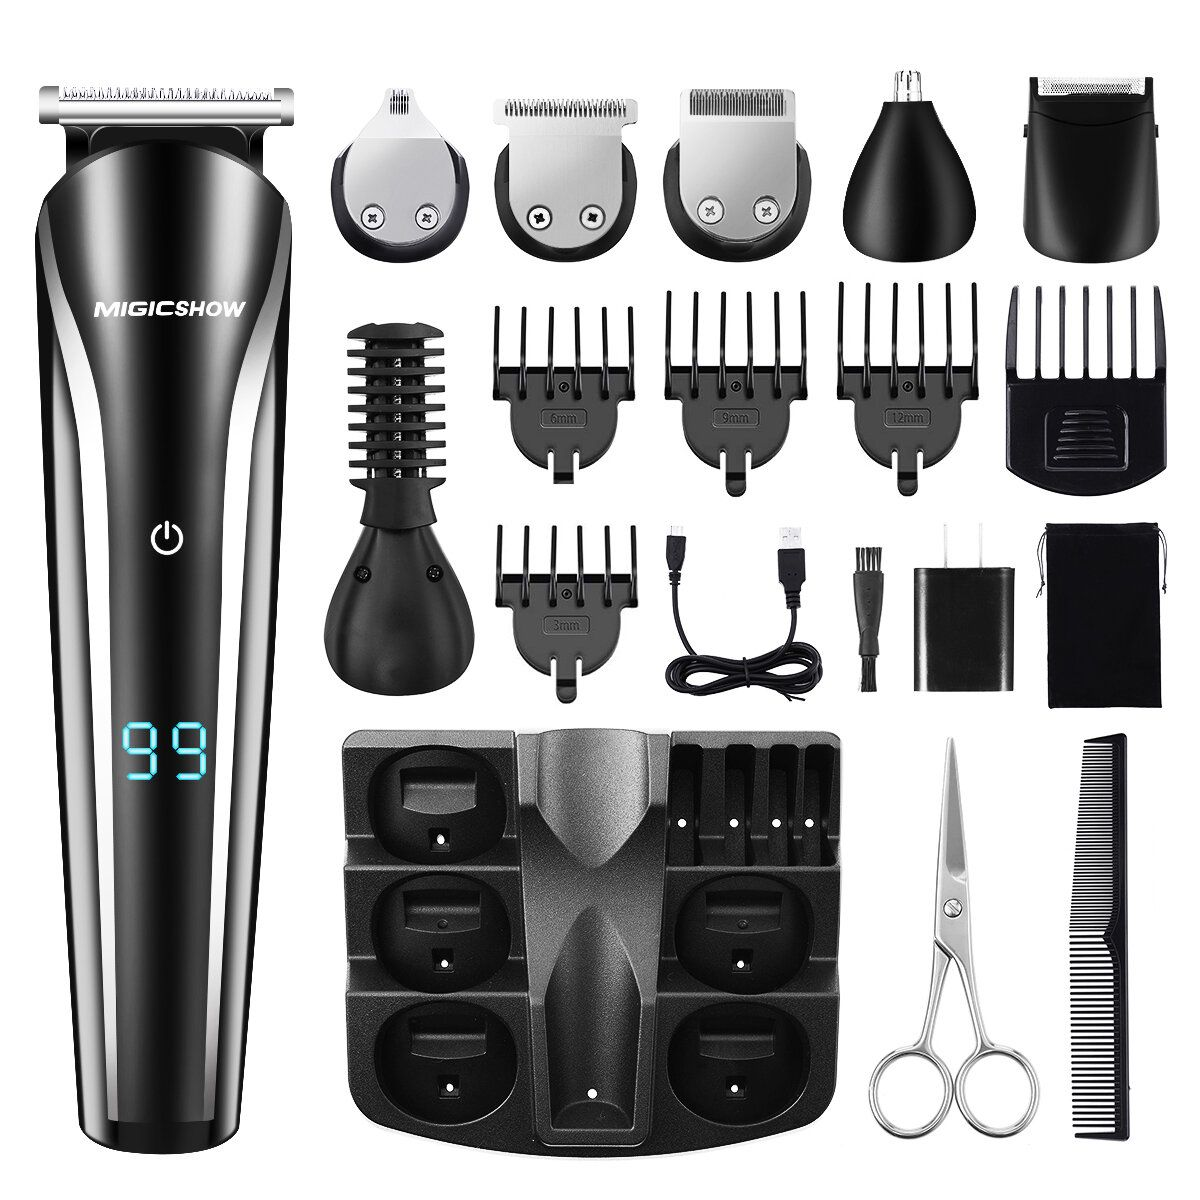 Professional Hair Trimmer Men MIGICSHOW Beard Trimmer Shaving 11 In 1 Electric Hair Trimmer Shaver Remove Nose Hair Ears Body Underarm Legs Waterproof